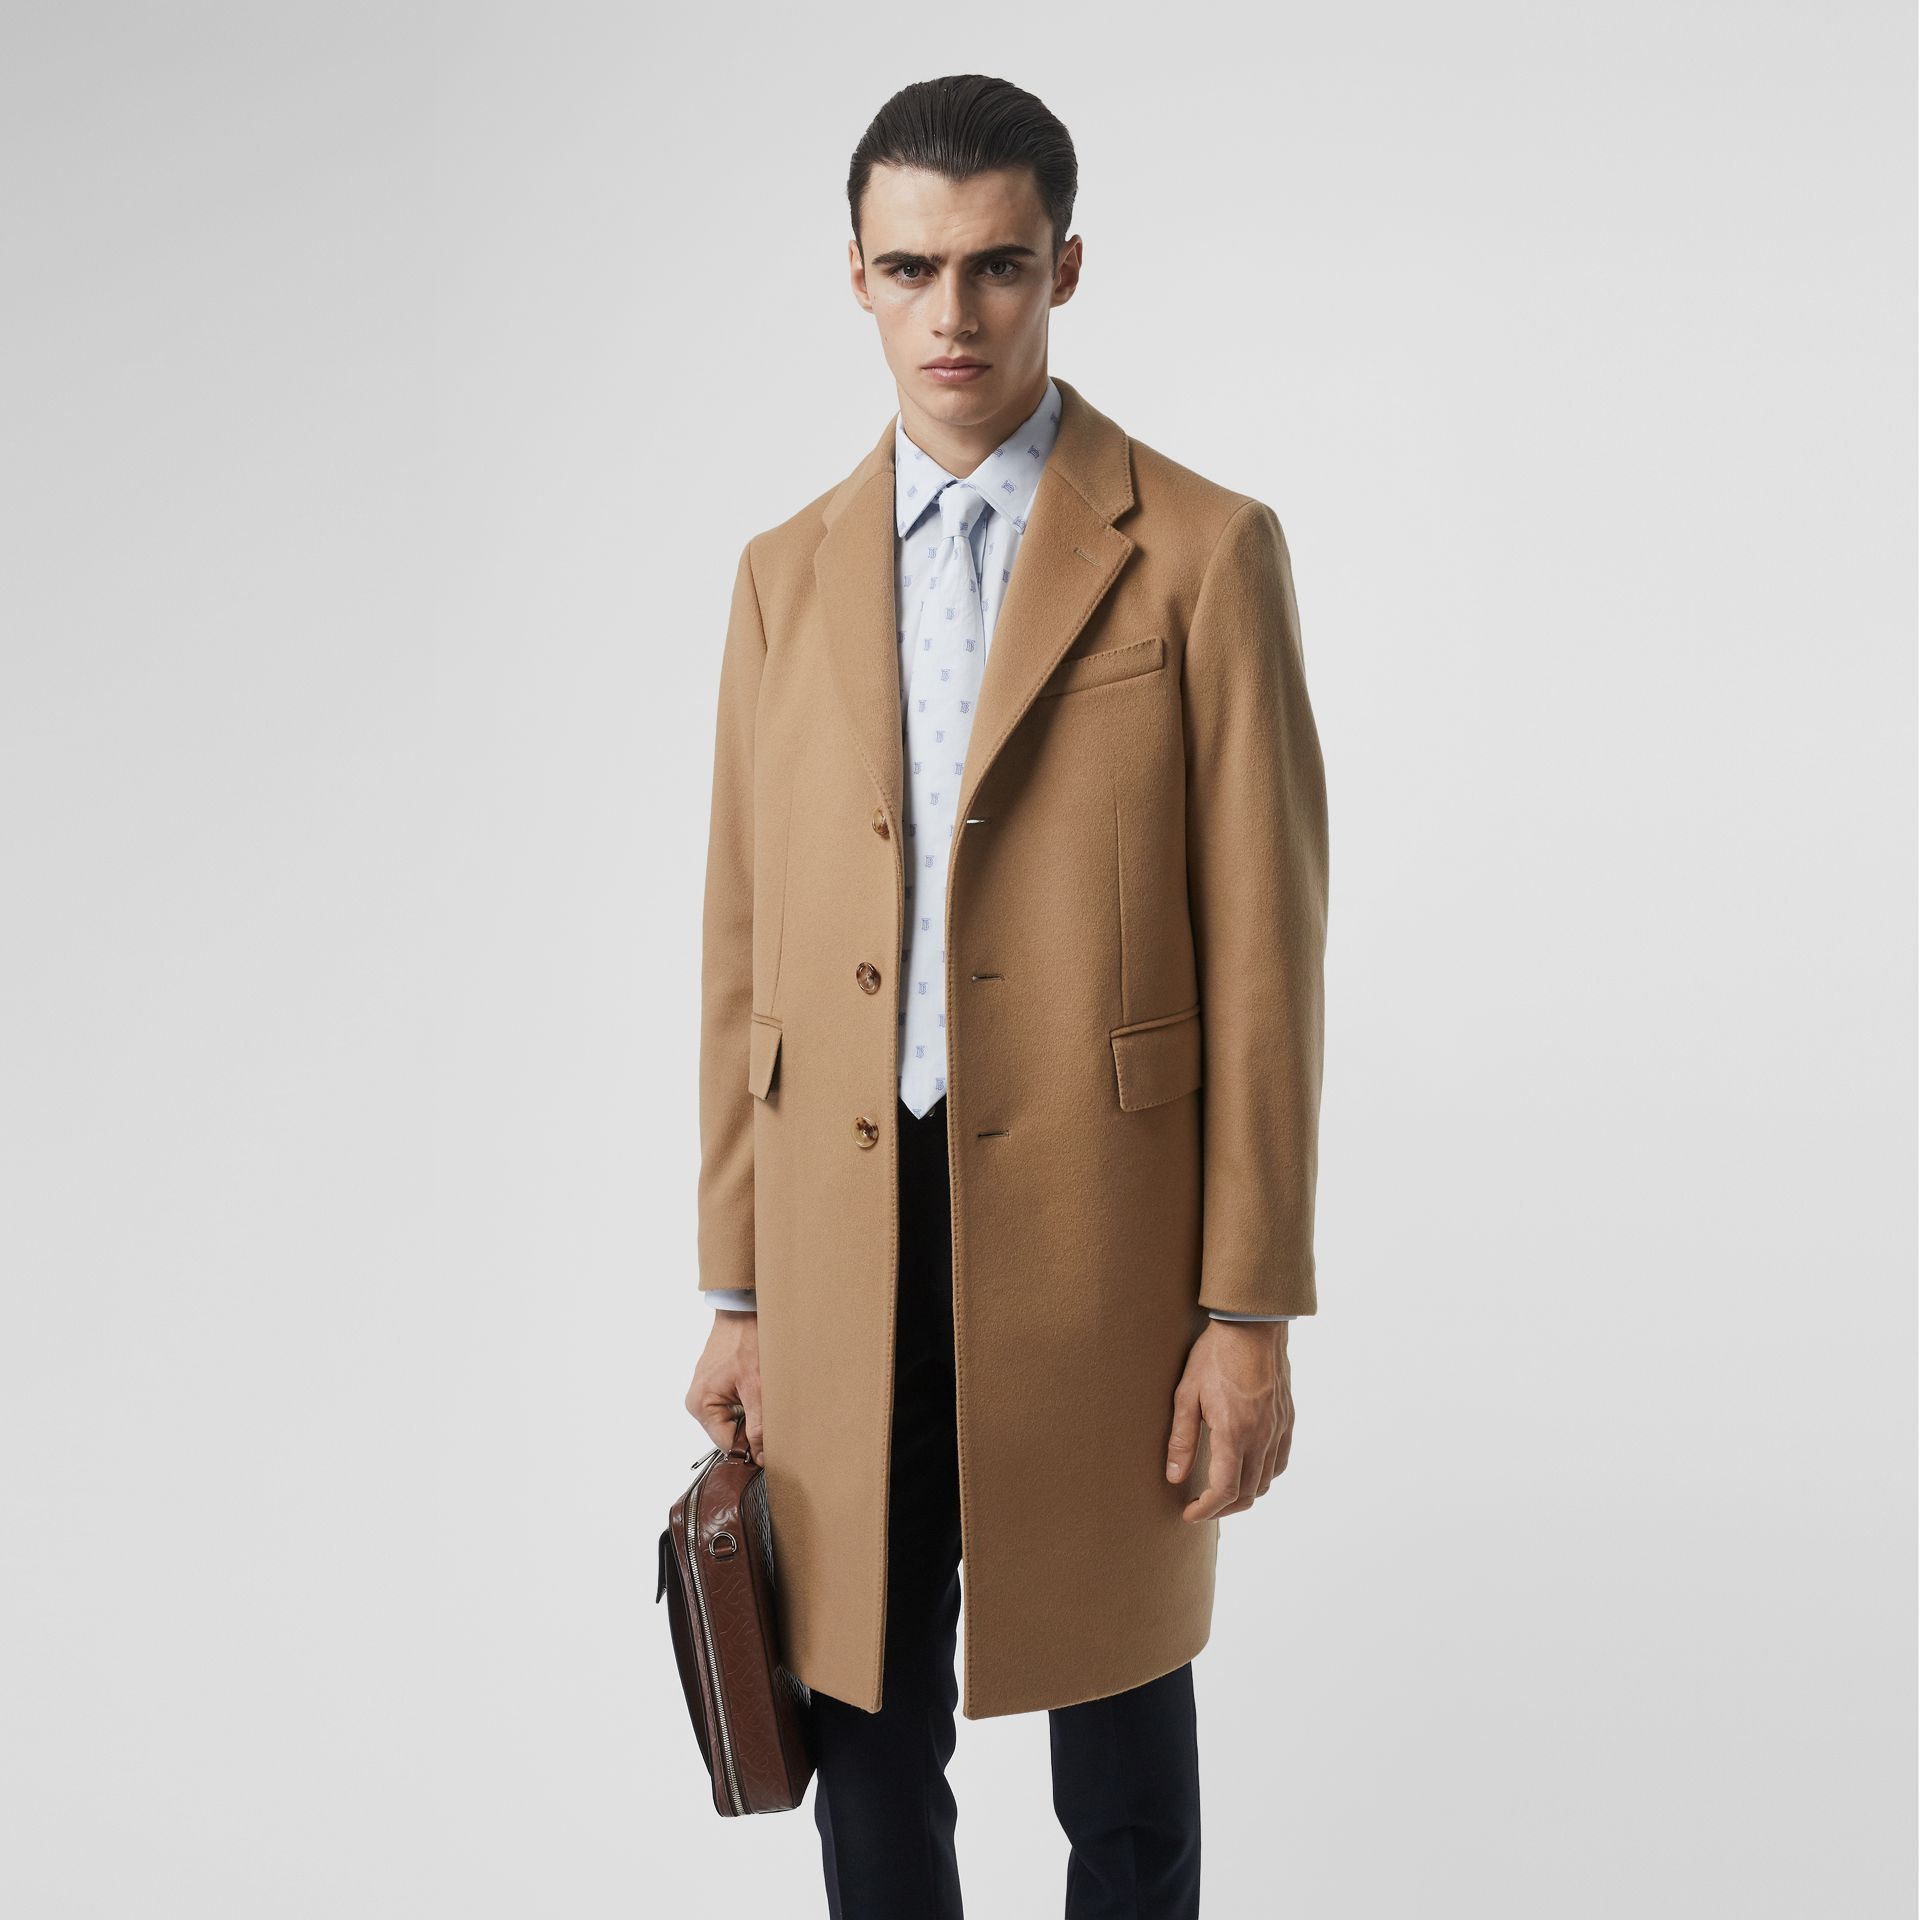 Wool Cashmere Tailored Coat in Camel - Men | Burberry United States - gallery image 4